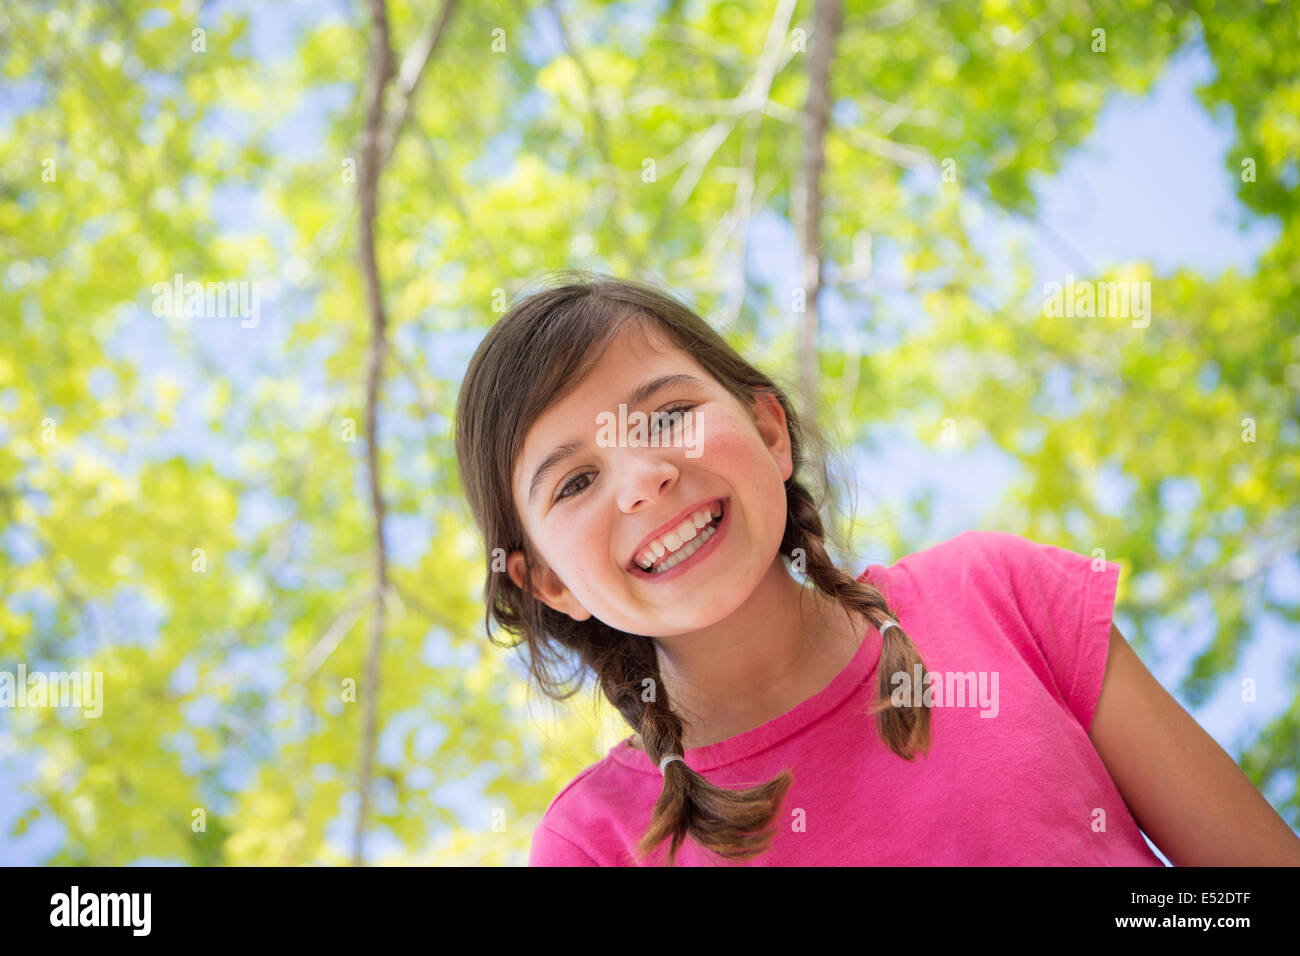 A young girl with braids wearing a pink top under a canopy of trees. - Stock Image